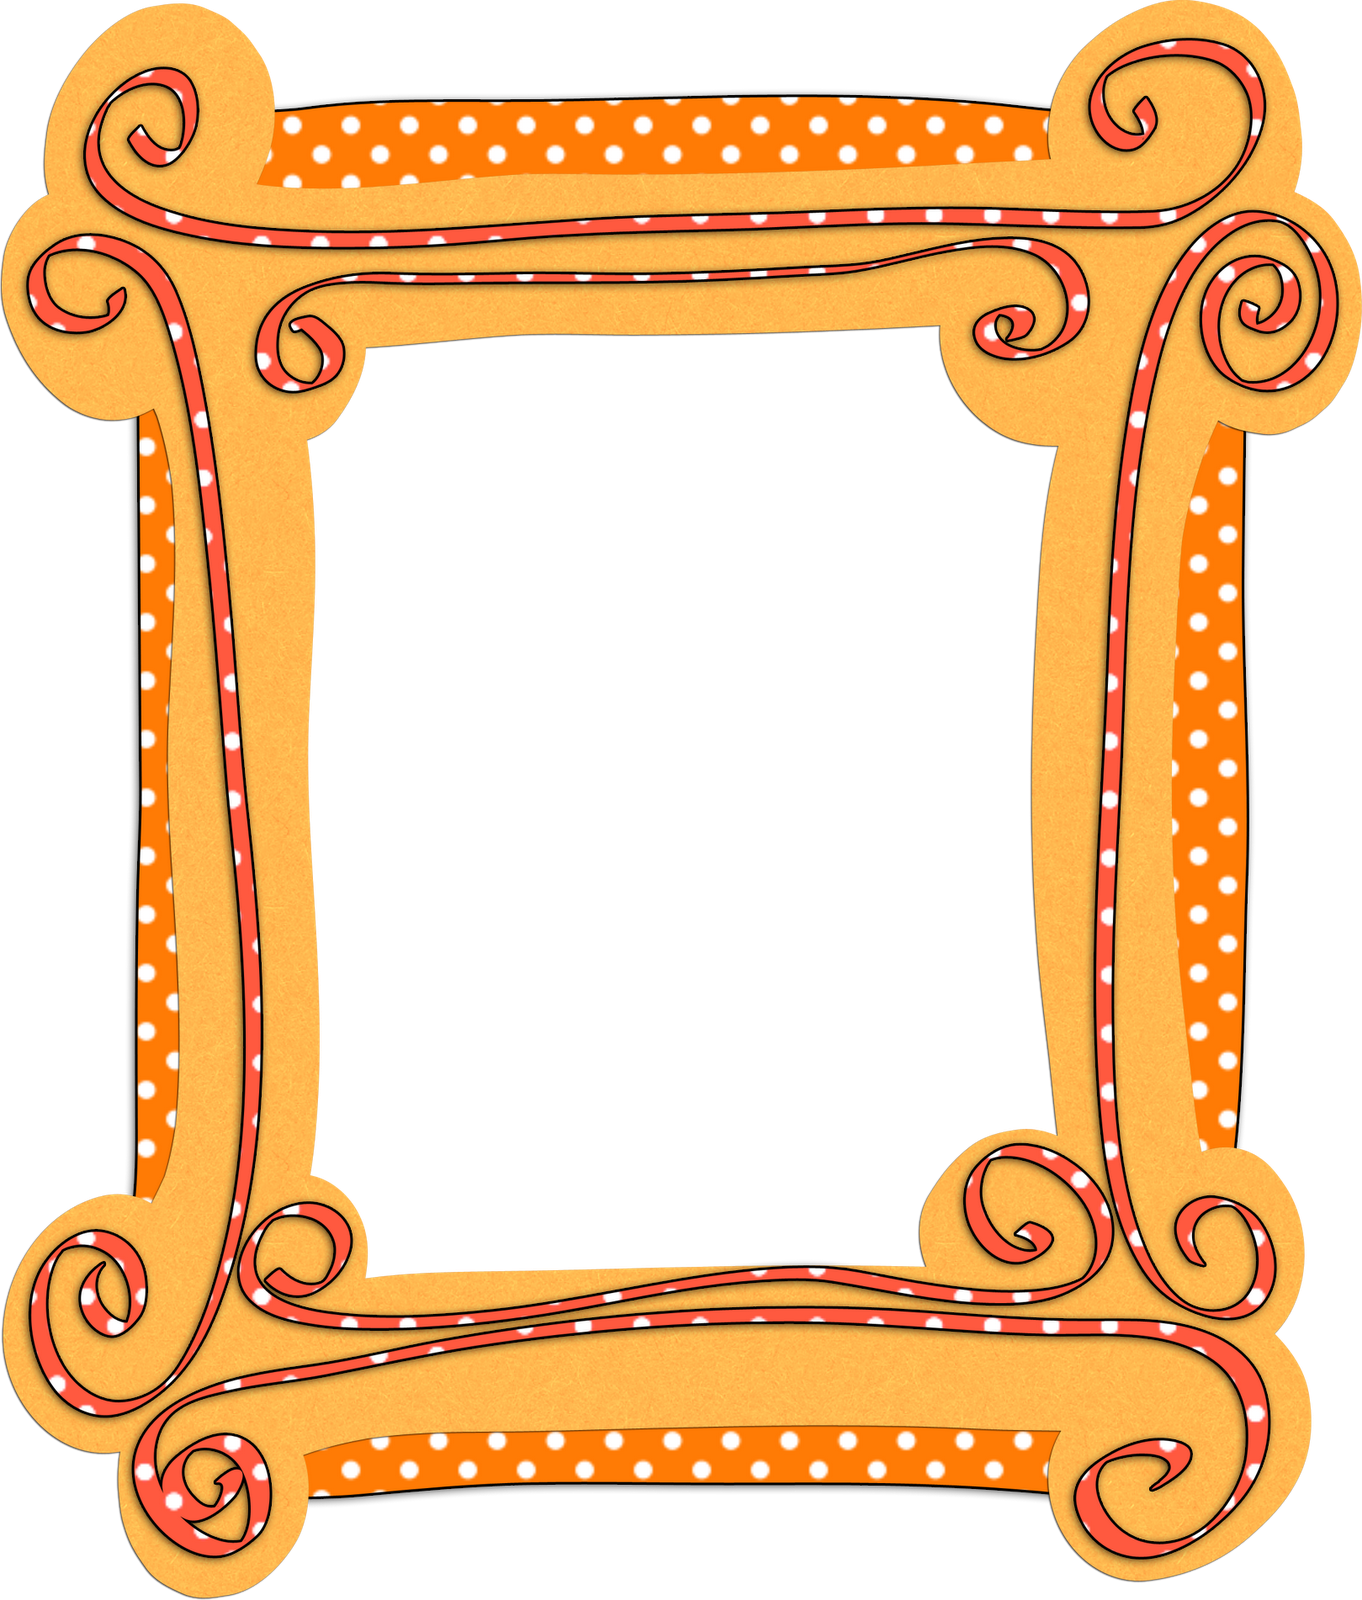 Orange fram png thank you so much for visiting i could really orange fram png thank you so much for visiting i could really use some jeuxipadfo Choice Image